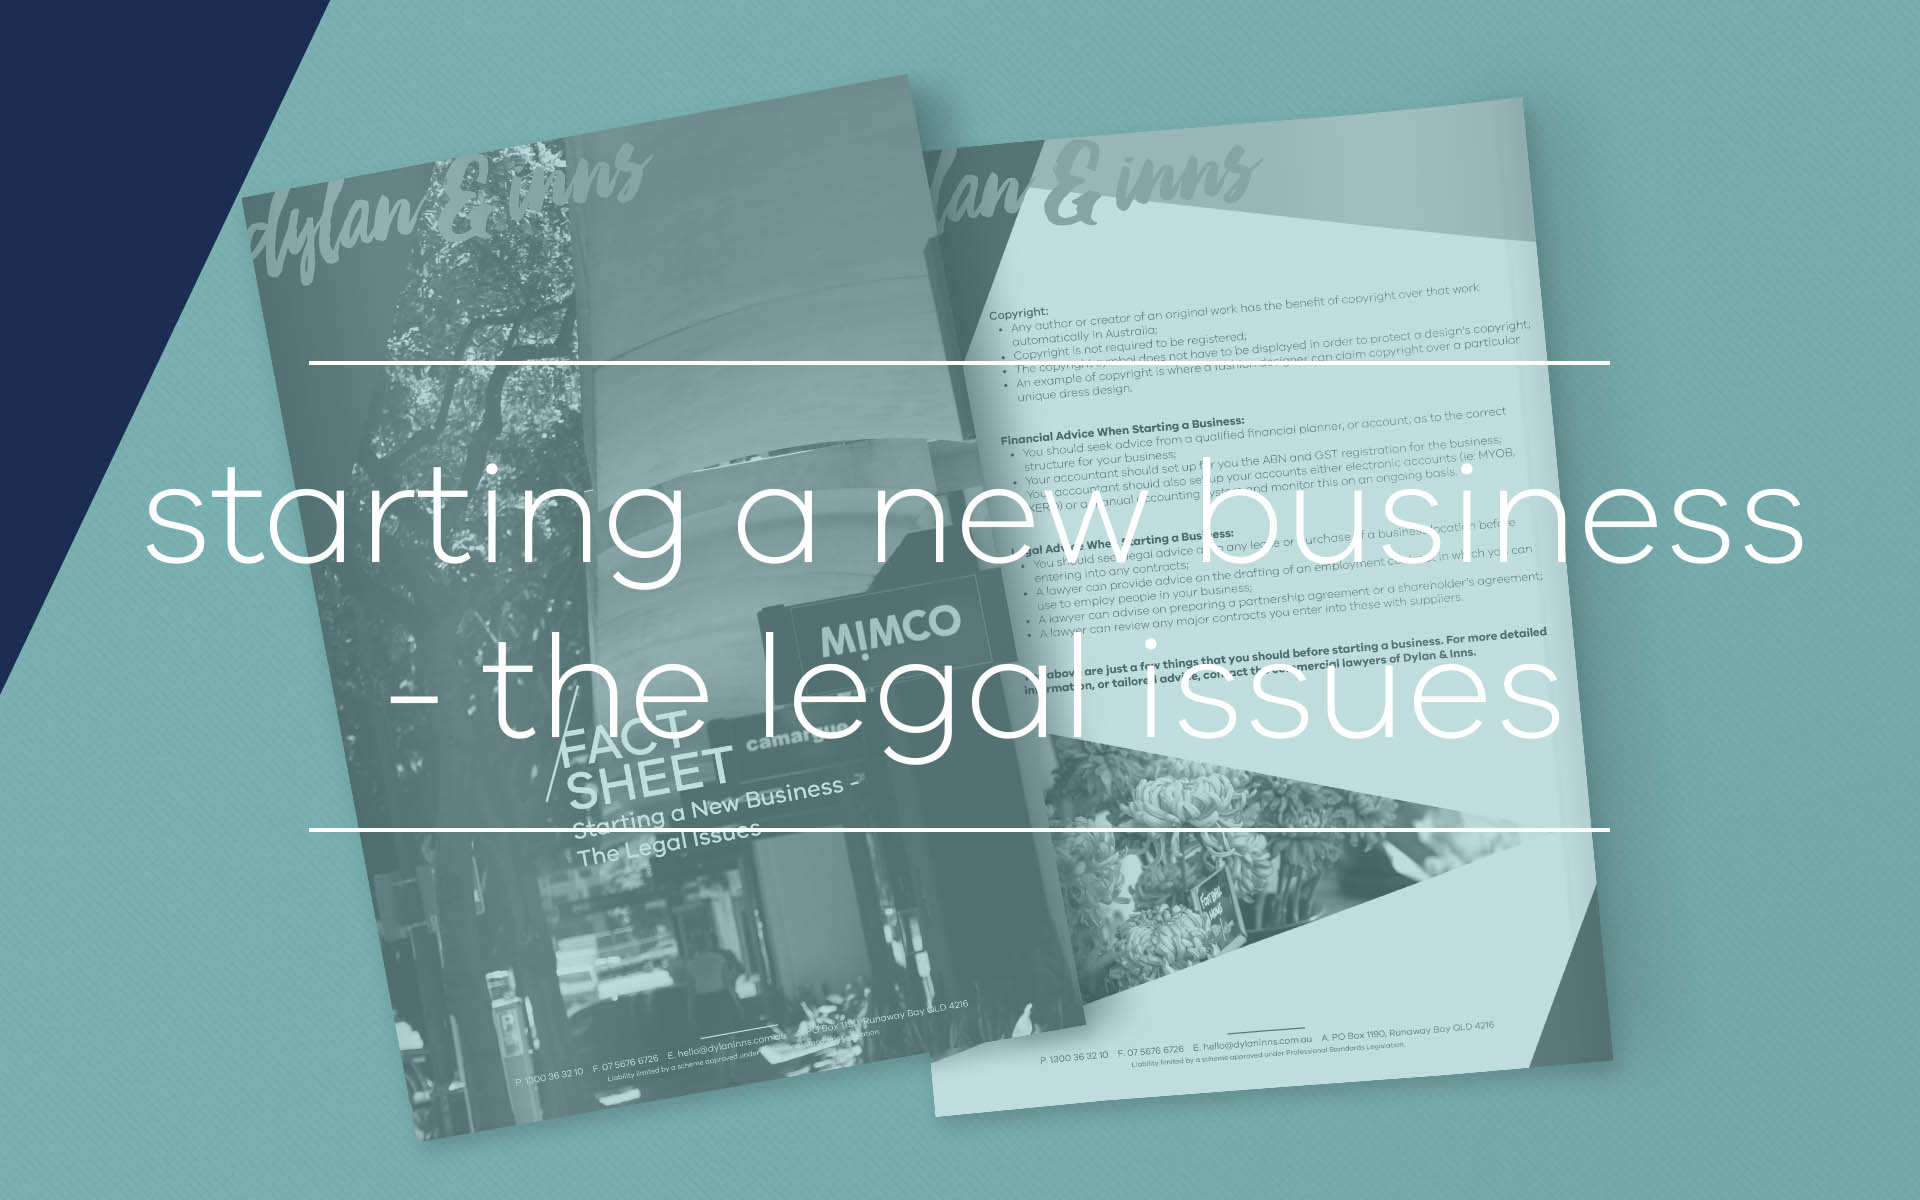 This fact sheets contains information on the steps involved in starting a new business and highlights several issues where a business lawyer can provide assistance.